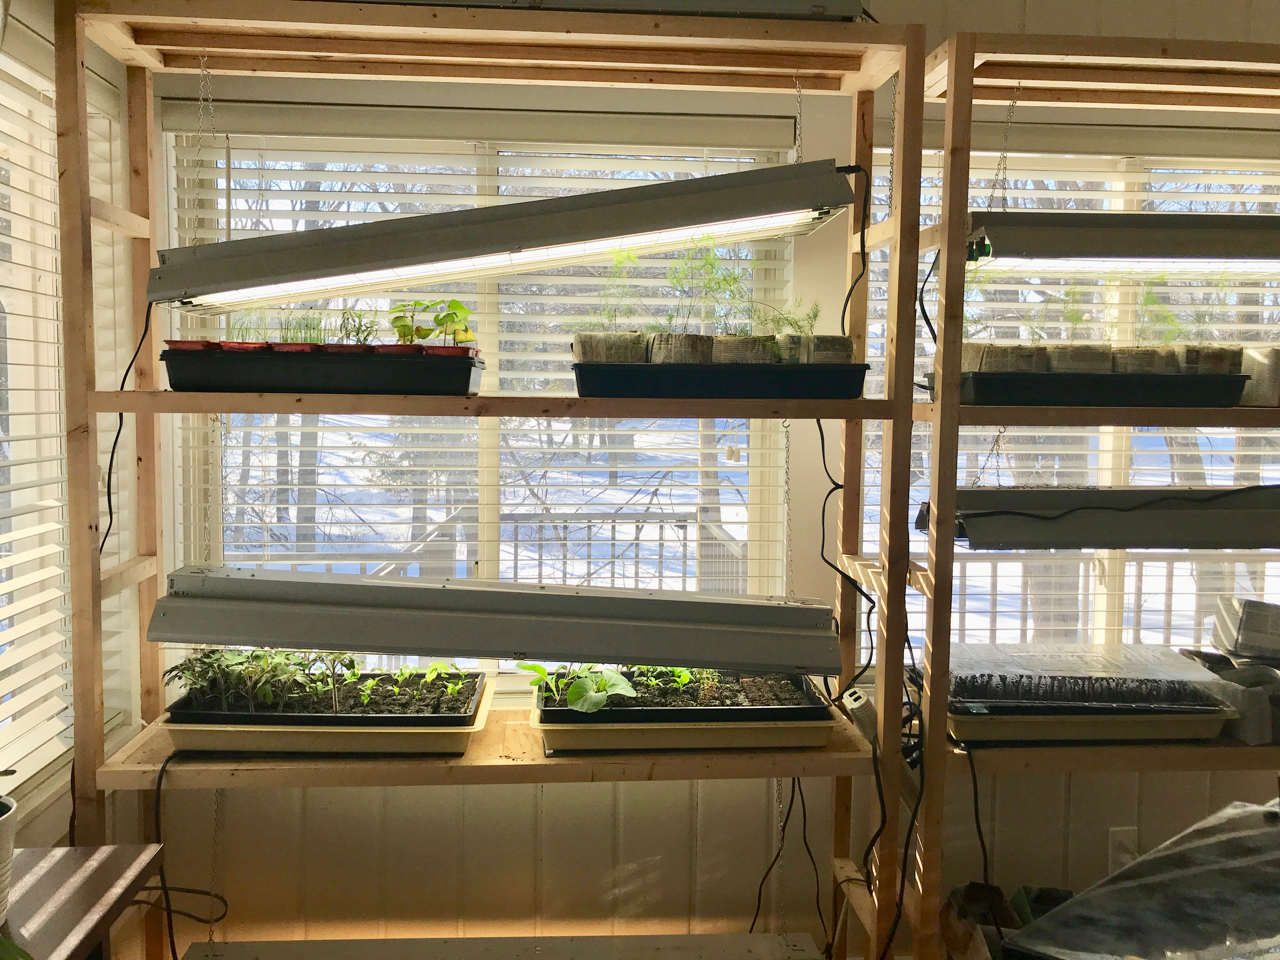 You can see how we adjust the lights to meet seedling height requirements. Also visible are the heat mats that are still on the tomato and pepper tray (middle left shelf).